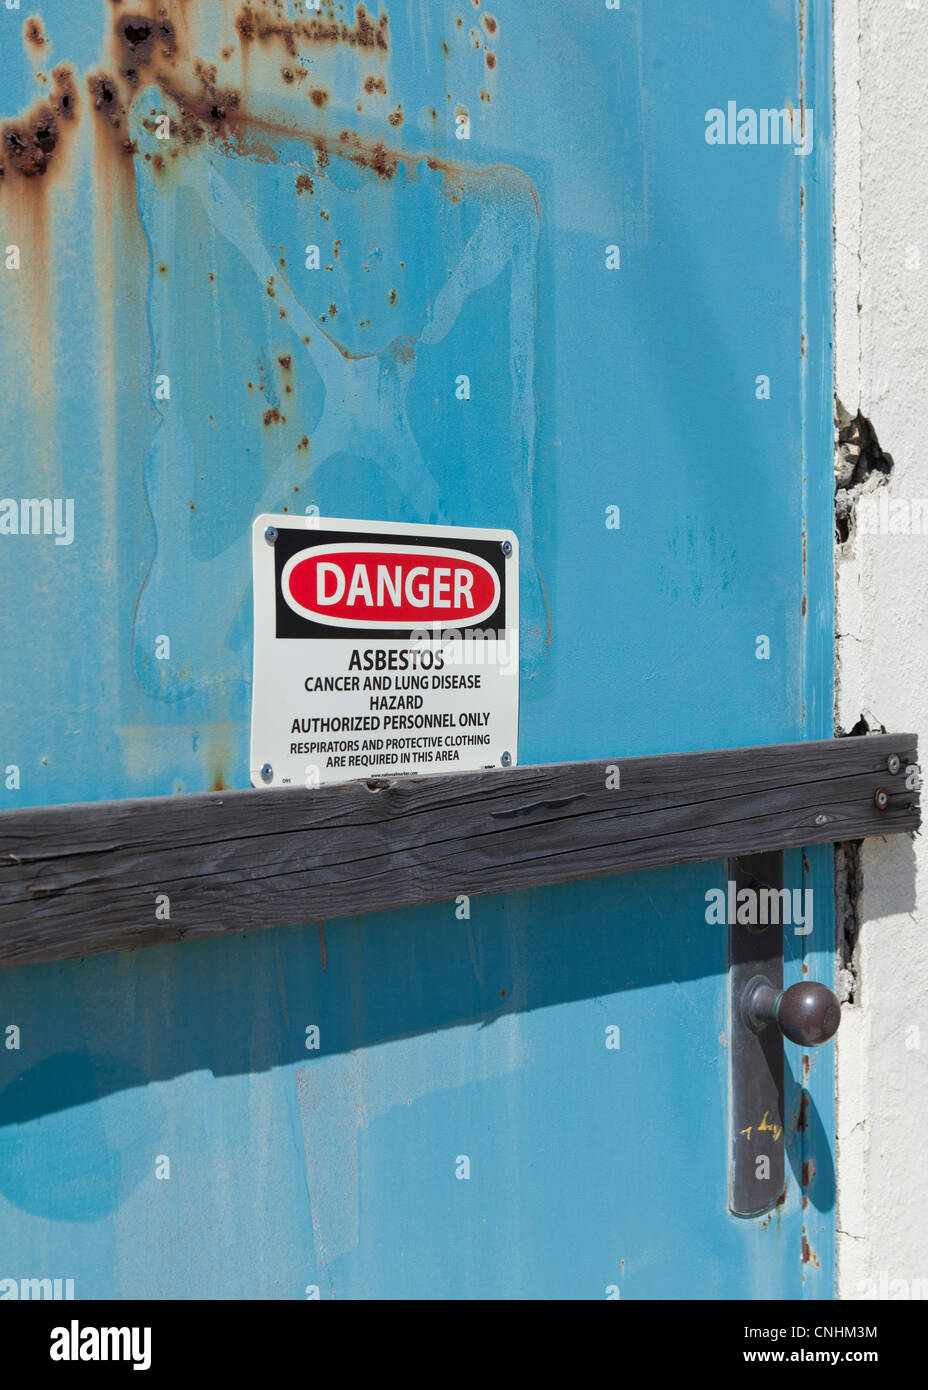 Asbestos warning sign posted on door - Stock Image